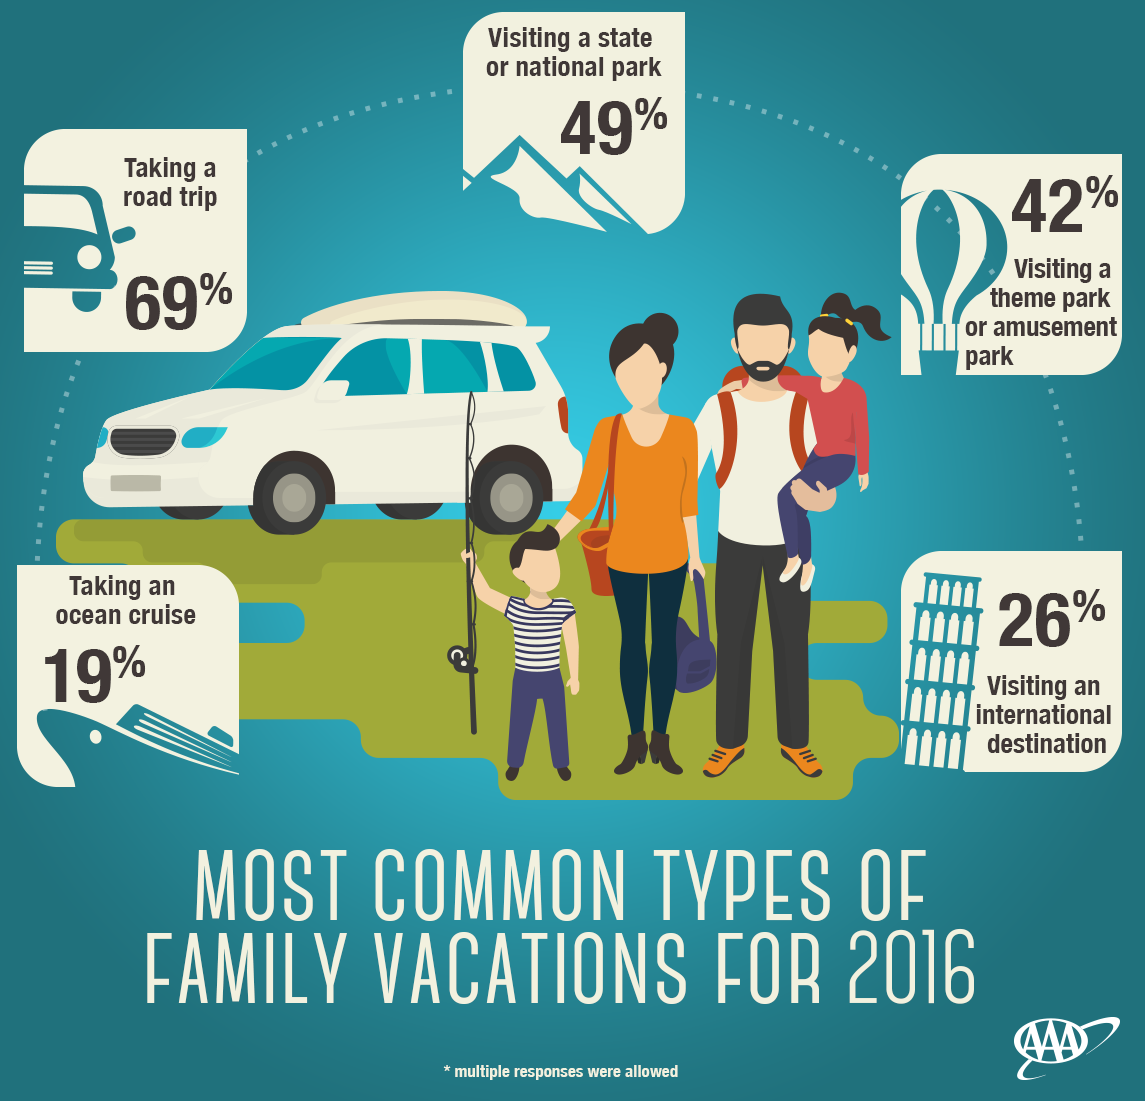 Are you planning a family vacation this year?